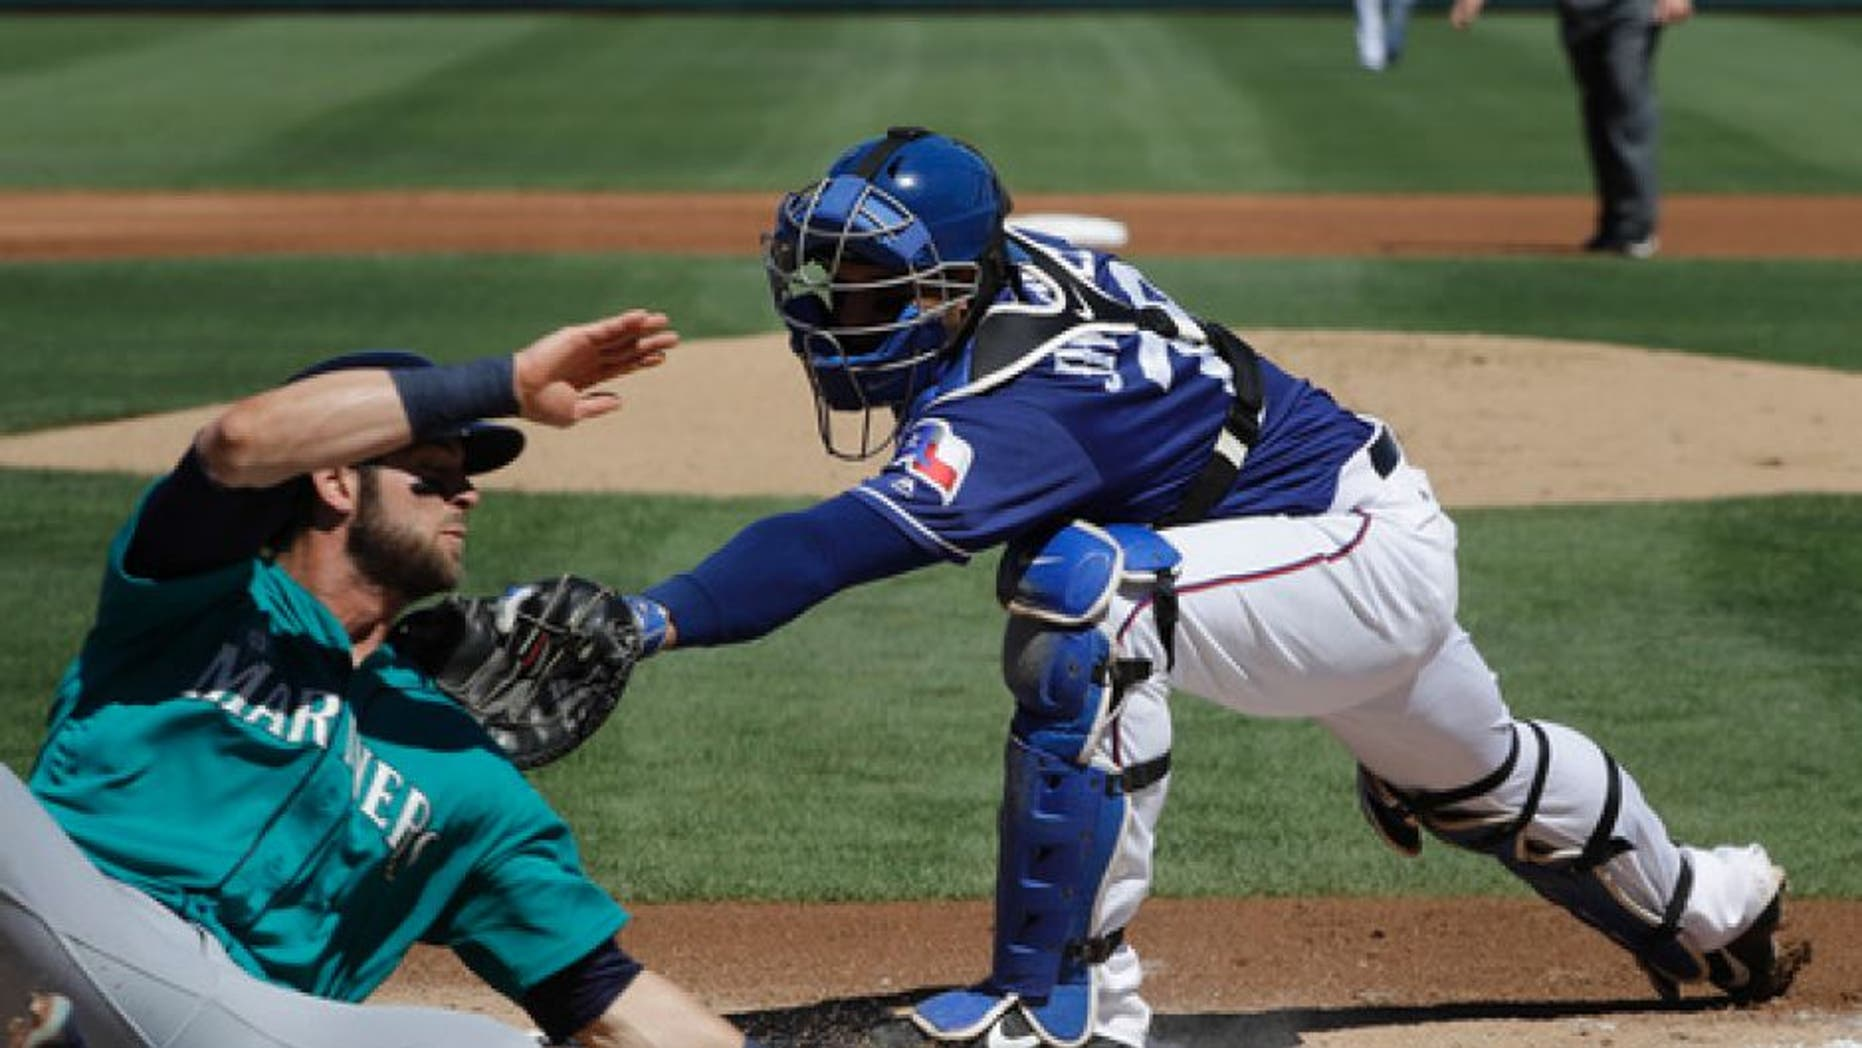 Texas Rangers catcher A.J. Jimenez tags out Seattle Mariners' Mitch Haniger during the first inning of a spring training baseball game Sunday, March 19, 2017, in Surprise, Ariz. (AP Photo/Darron Cummings)